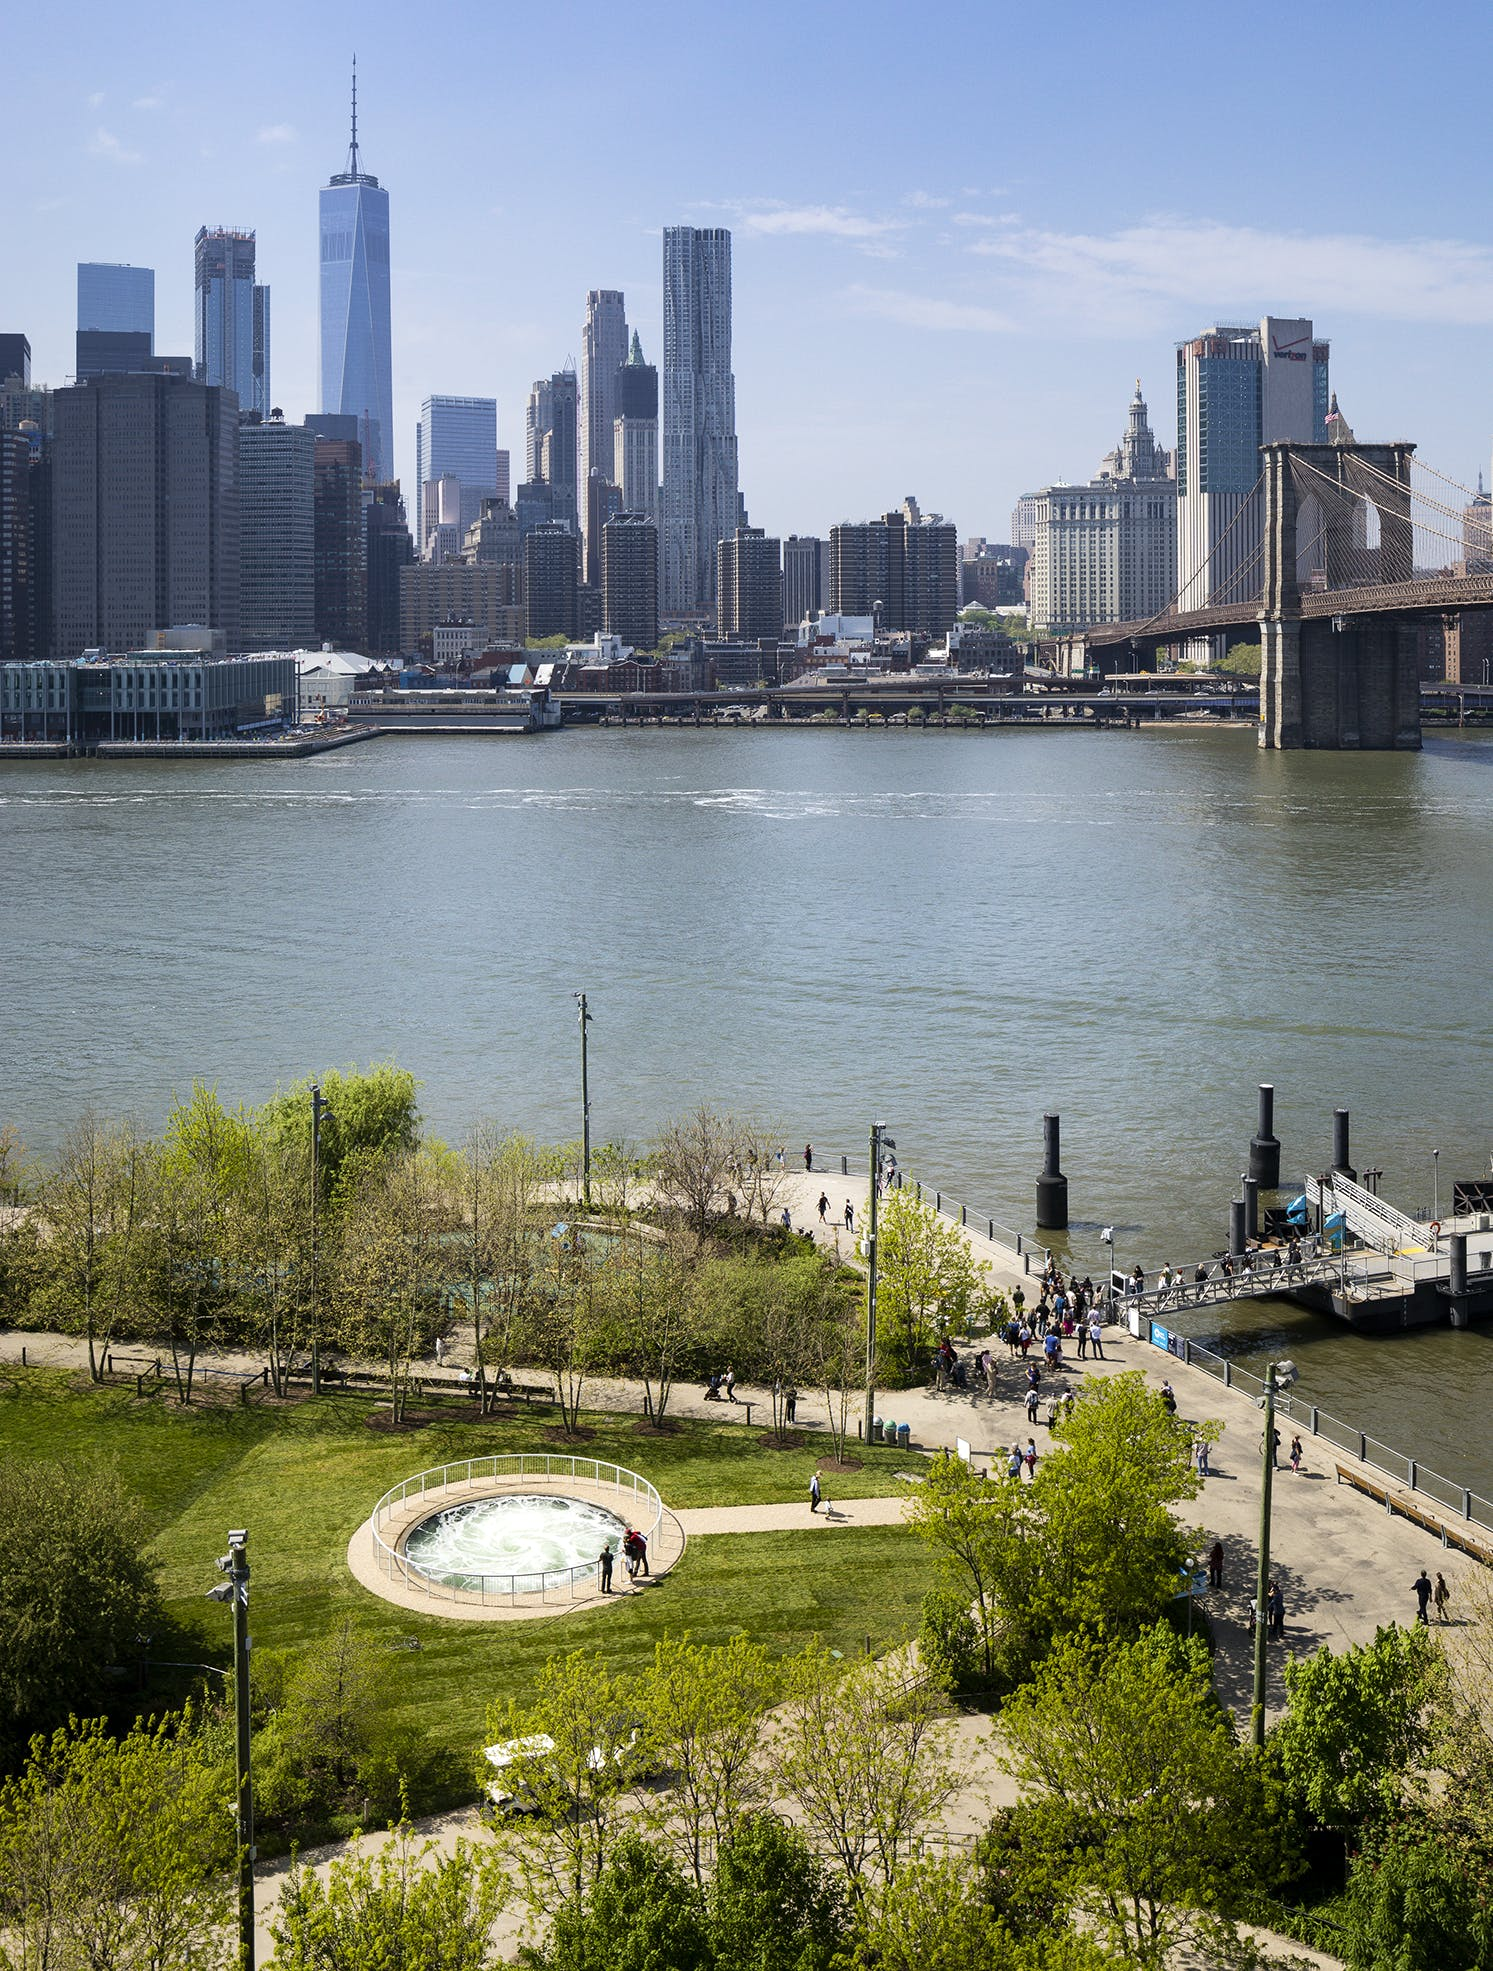 Anish Kapoor's Descension in Brooklyn Bridge Park, New York